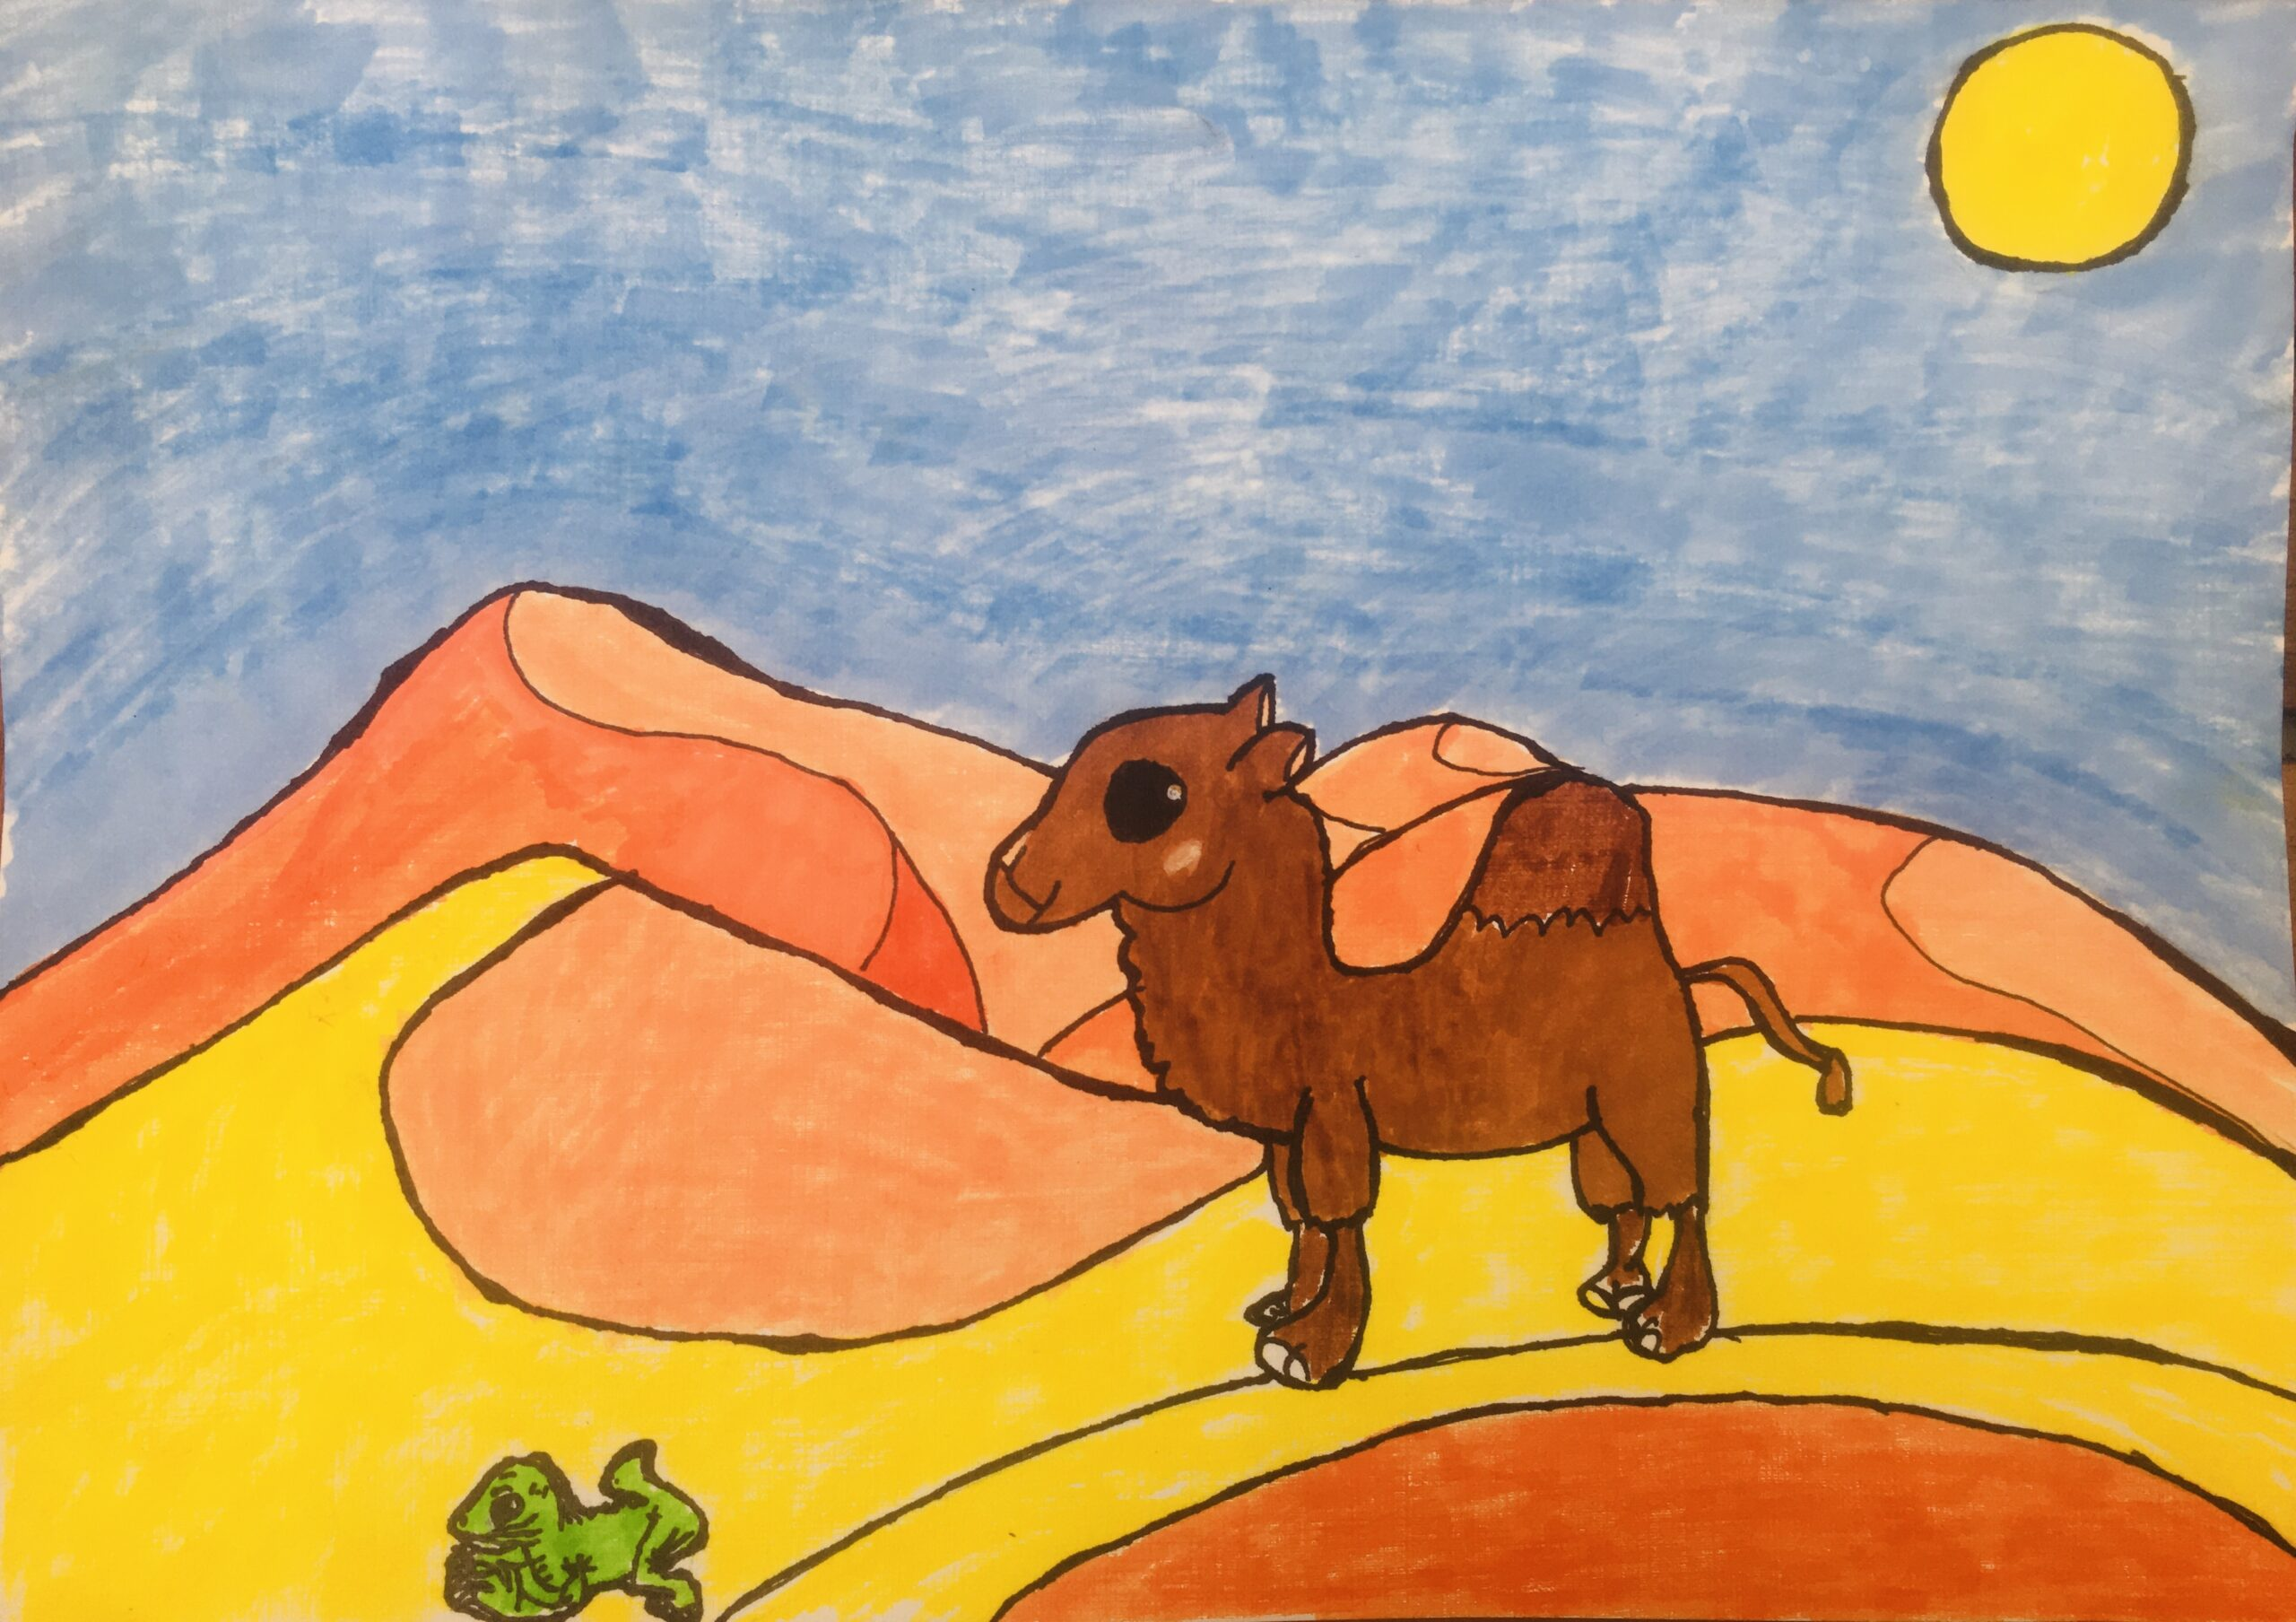 The Camel in the Desert by Rebecca Macintyre